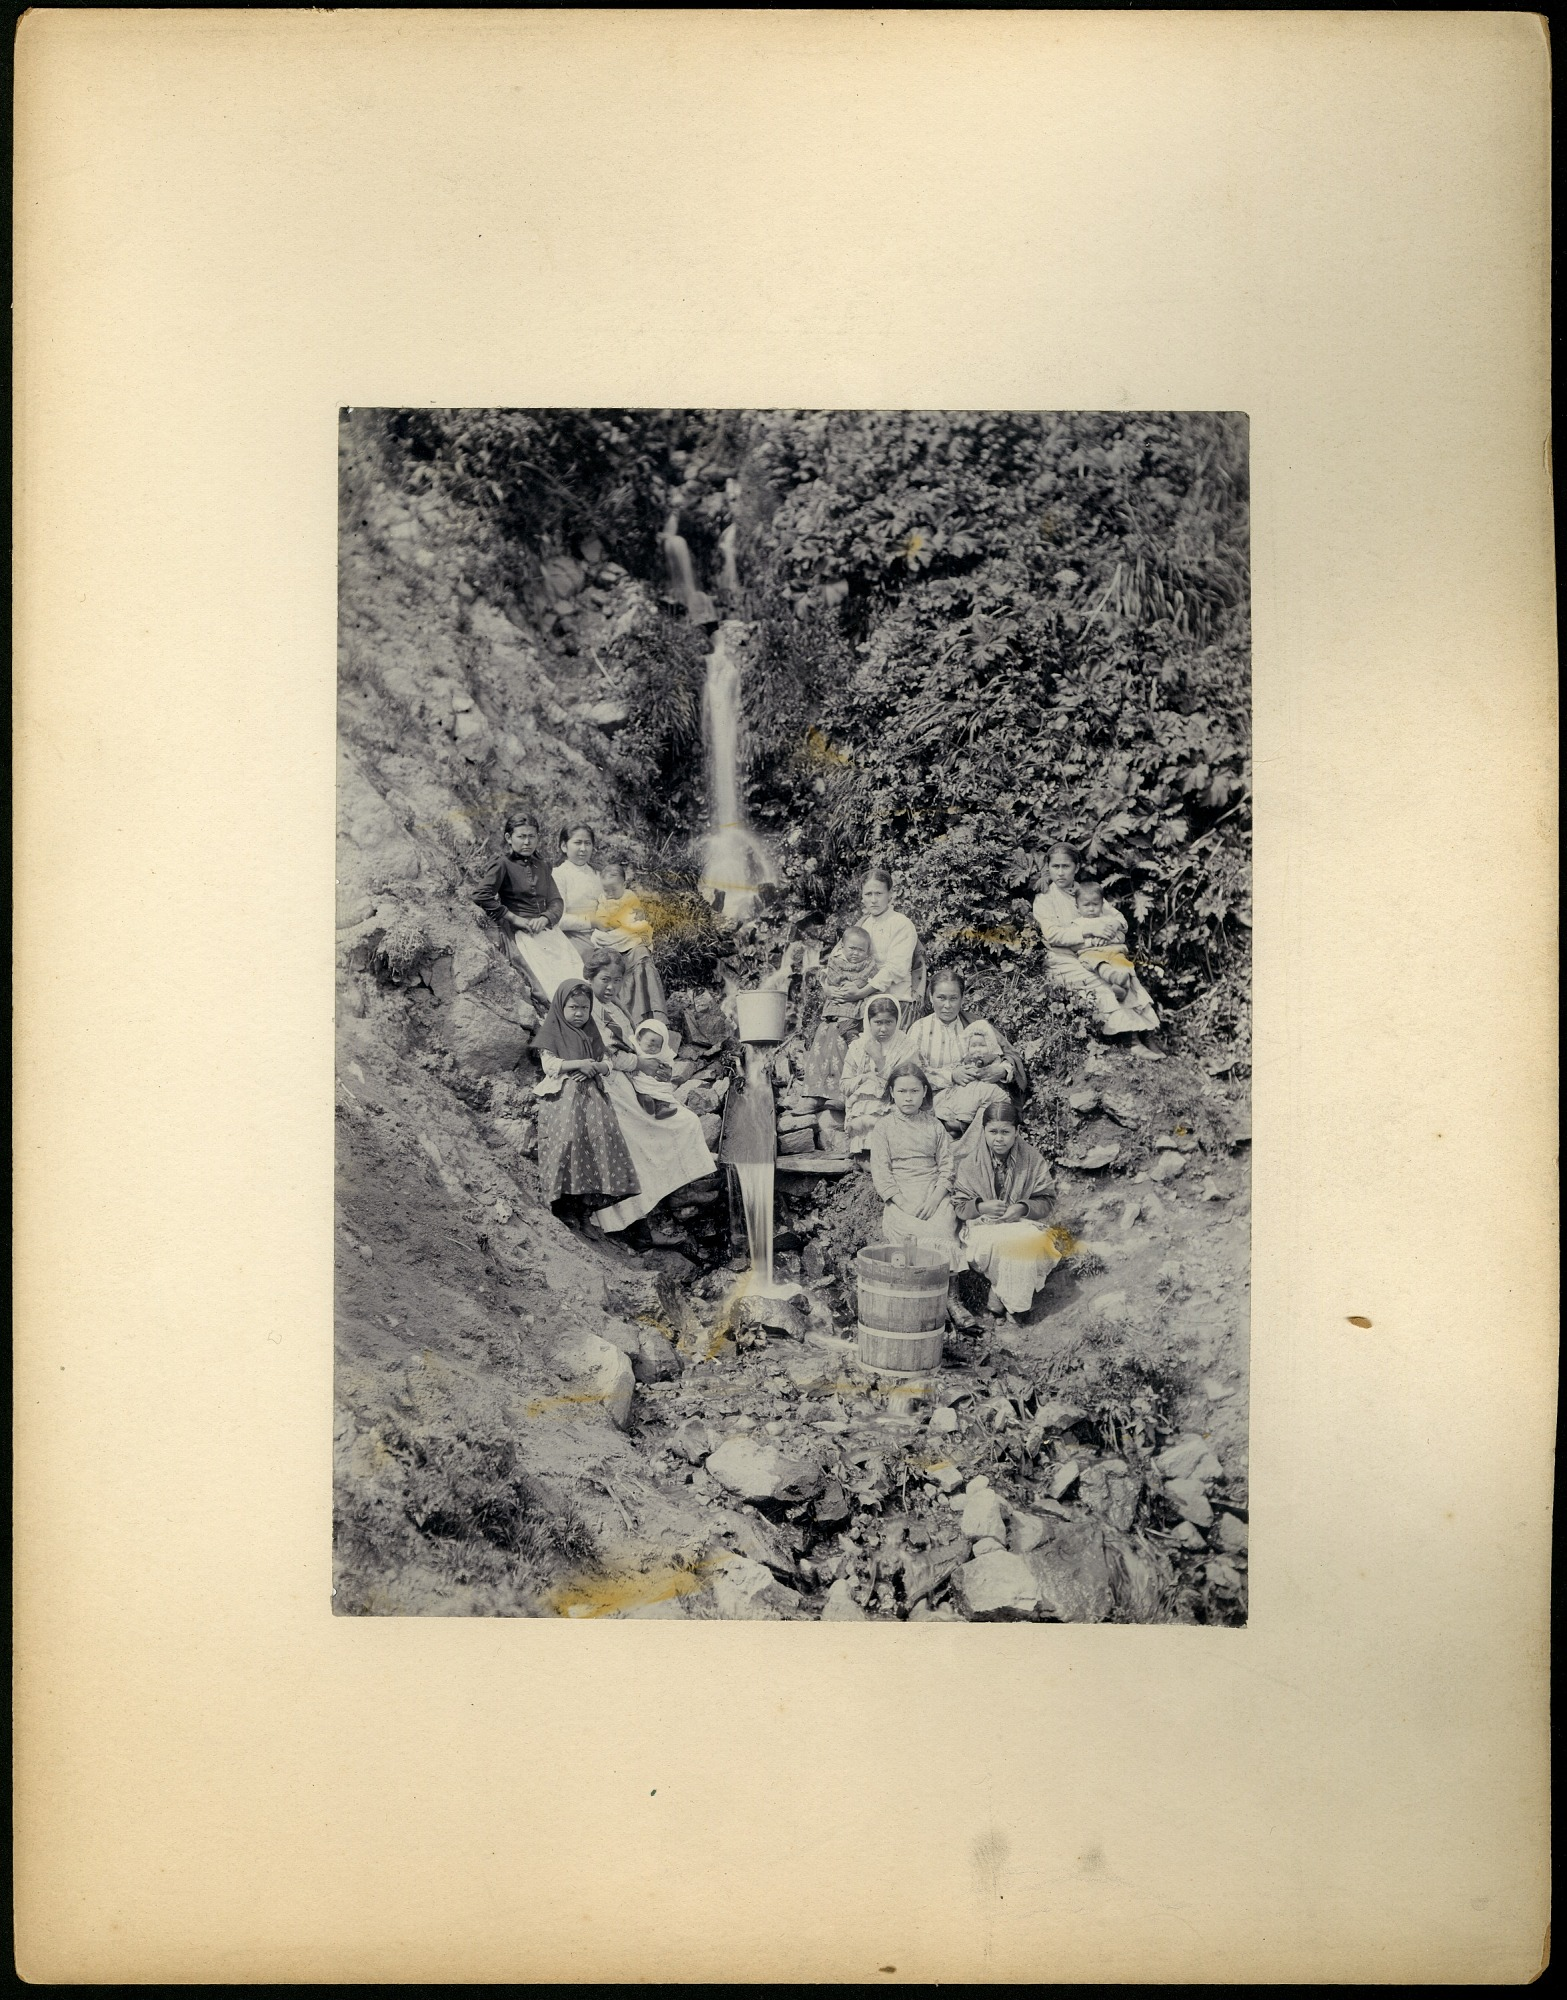 Unidentified women and children by waterfall